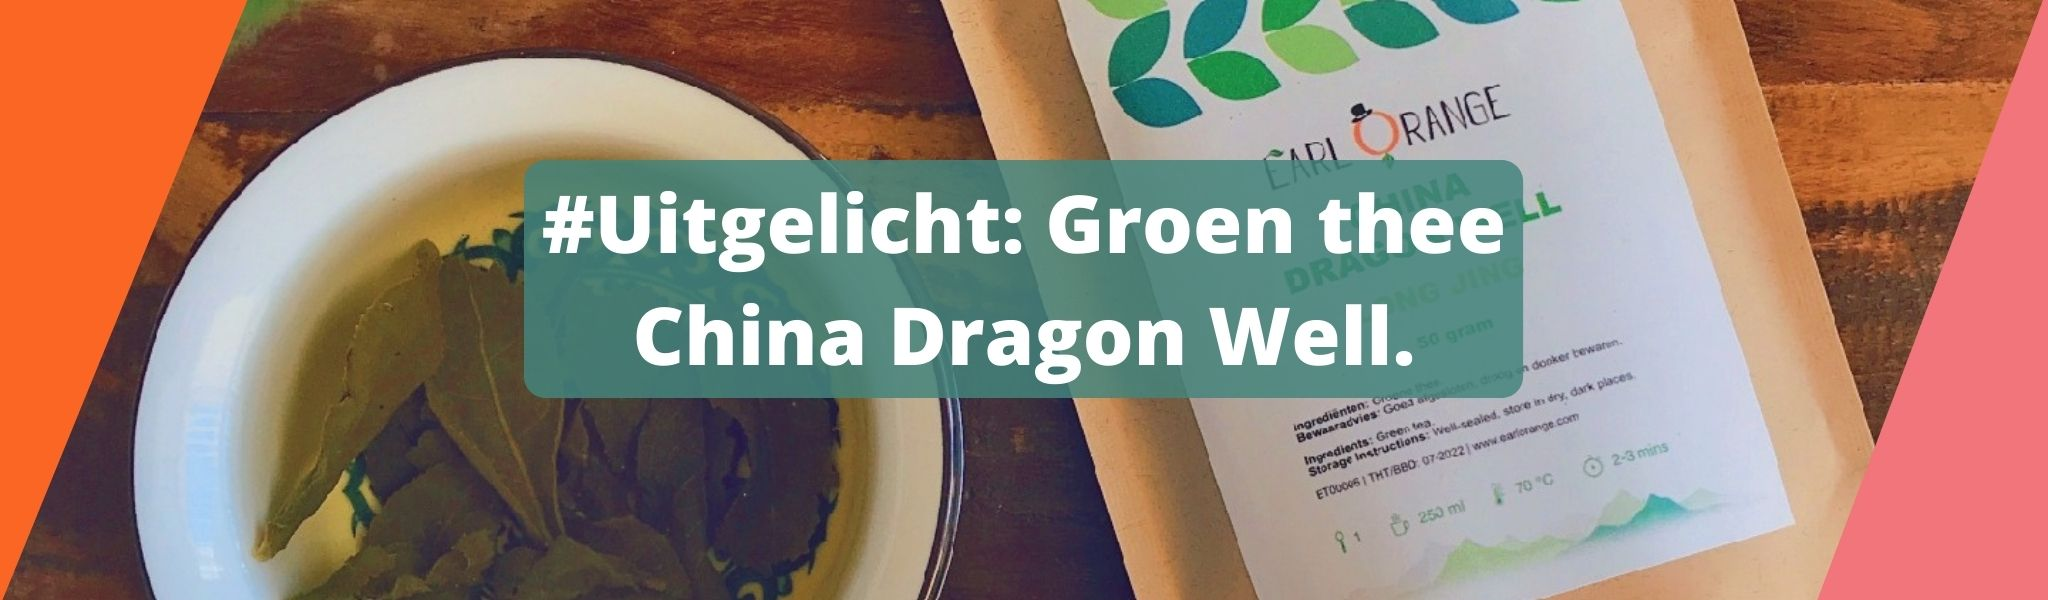 Lees hier alles over de groene thee China Dragon Well